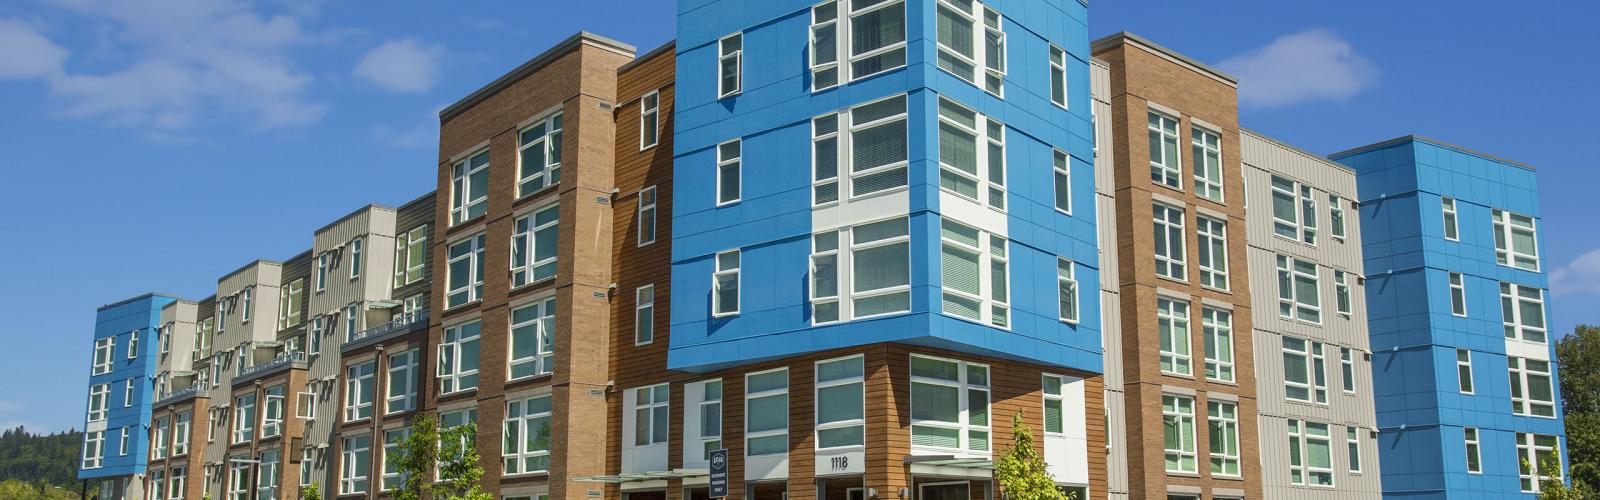 Photo of multifamily building.